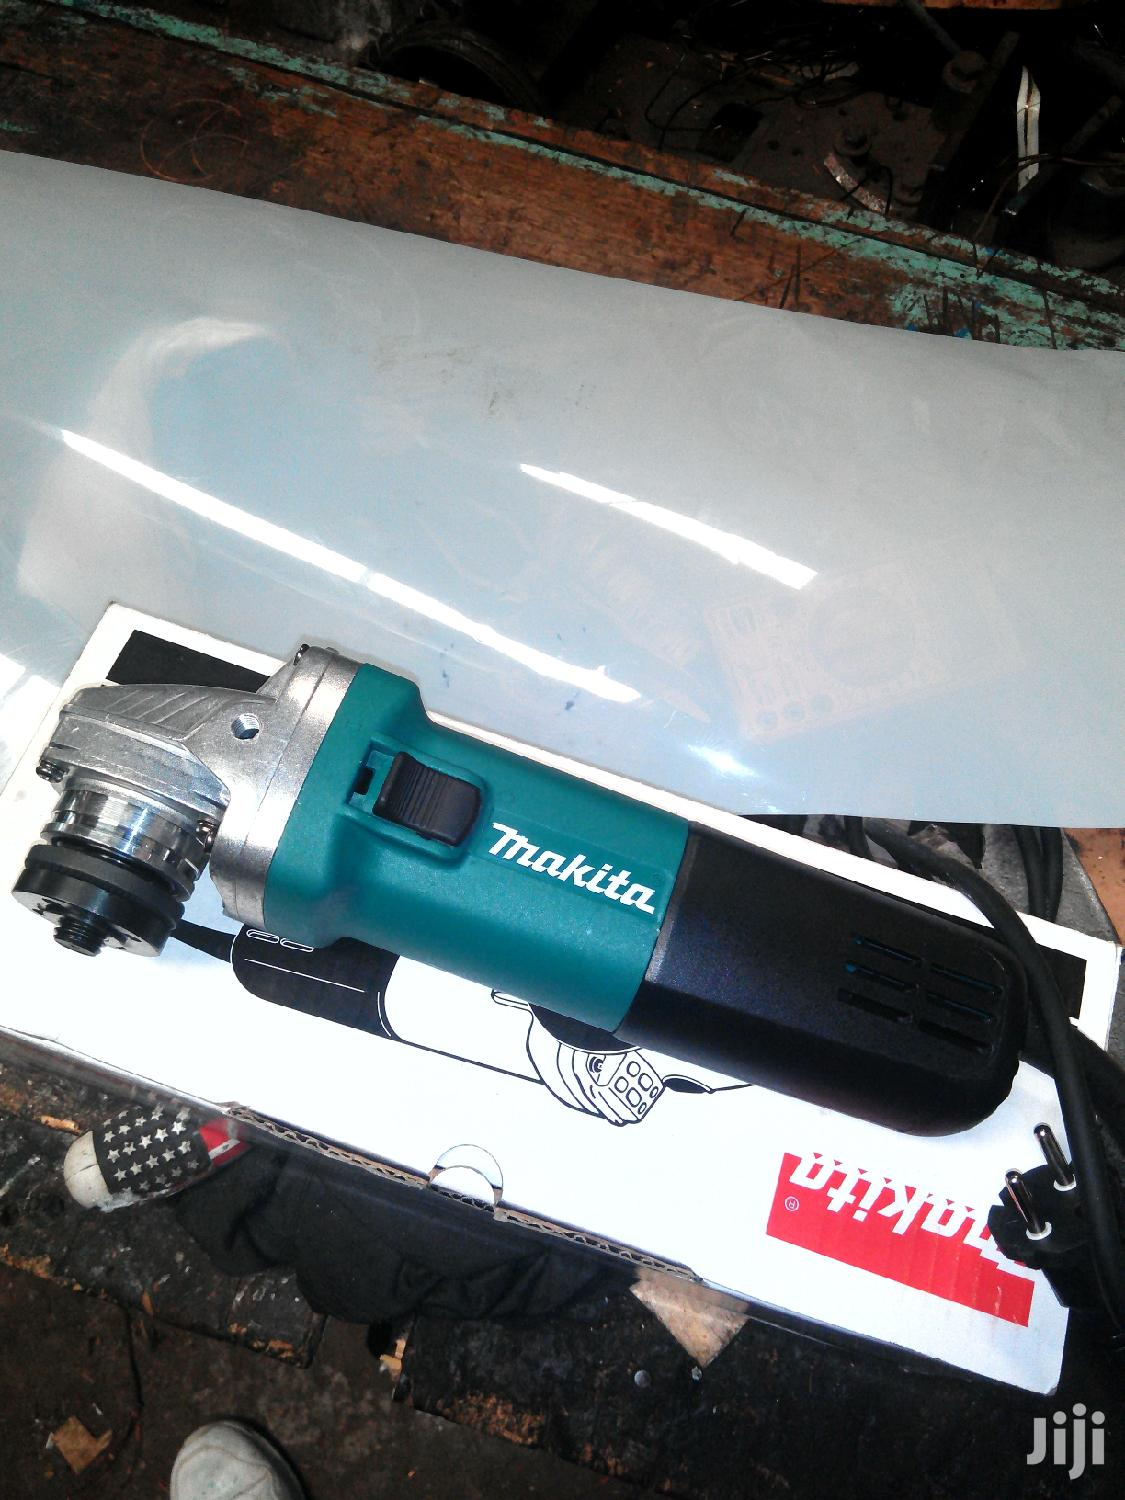 Makita Grinder 4 1/2 Inch ( Medium) | Electrical Tools for sale in Ziwani/Kariokor, Nairobi, Kenya